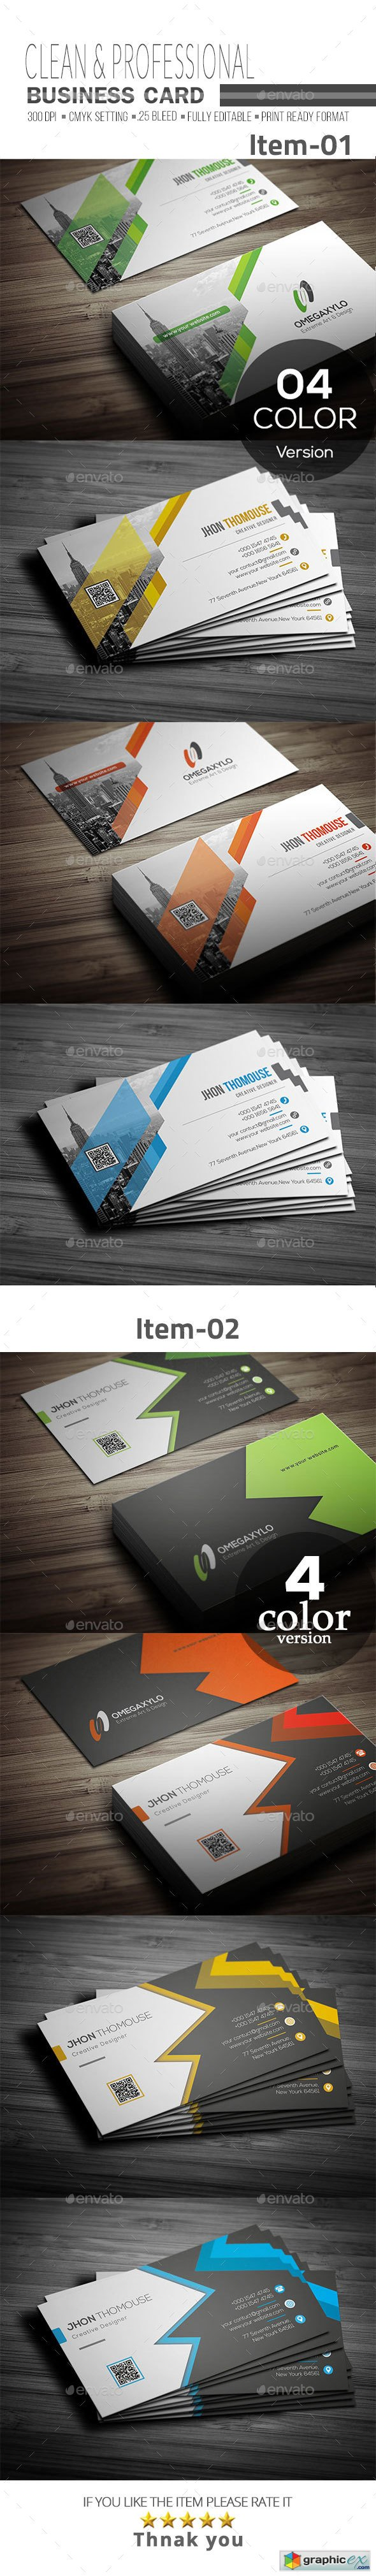 Business Card Bundle 2 In 1 20712119